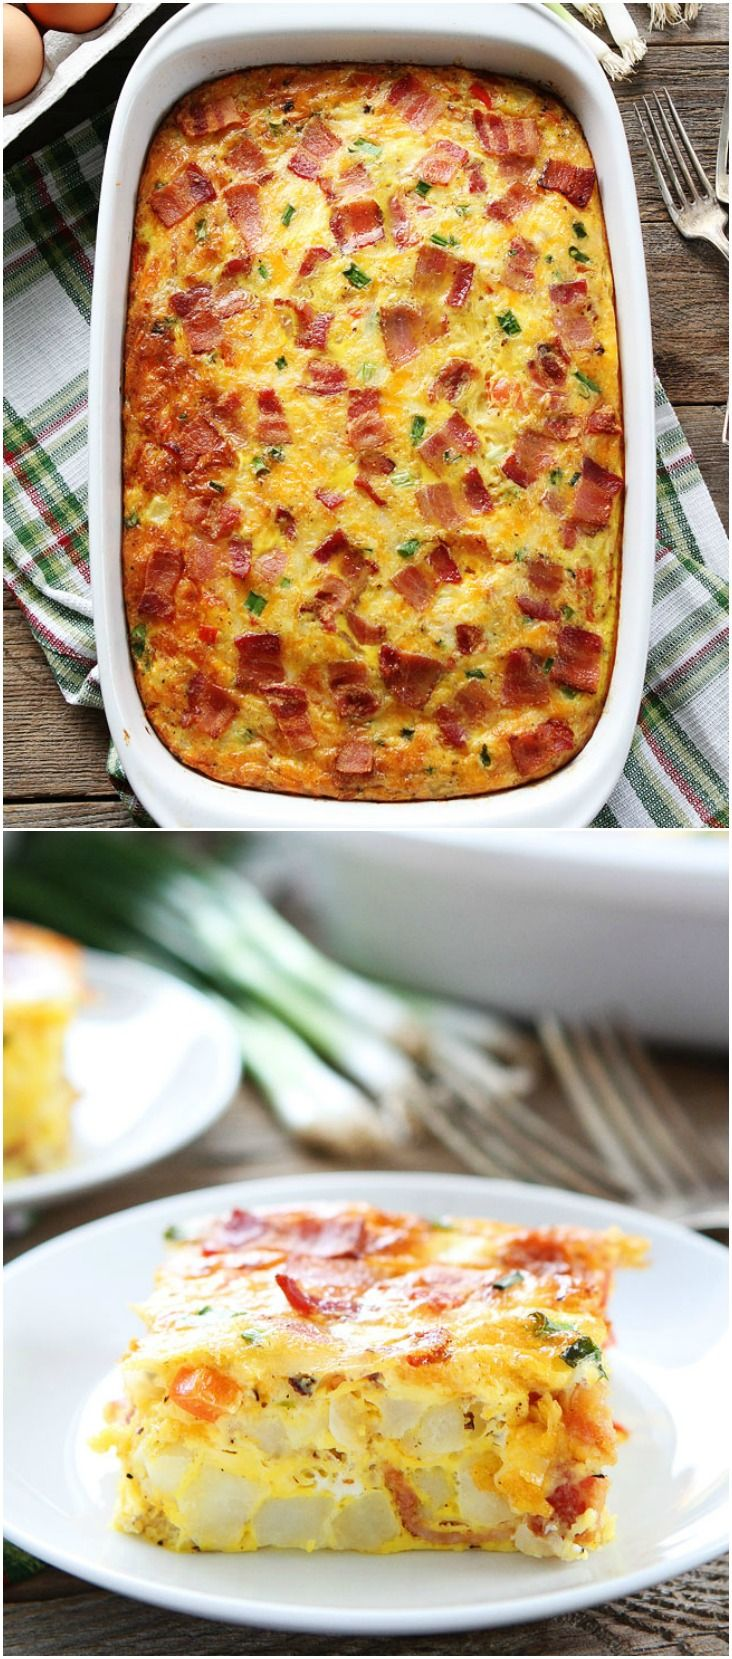 All Food and Drink: Bacon, Potato, and Egg Casserole